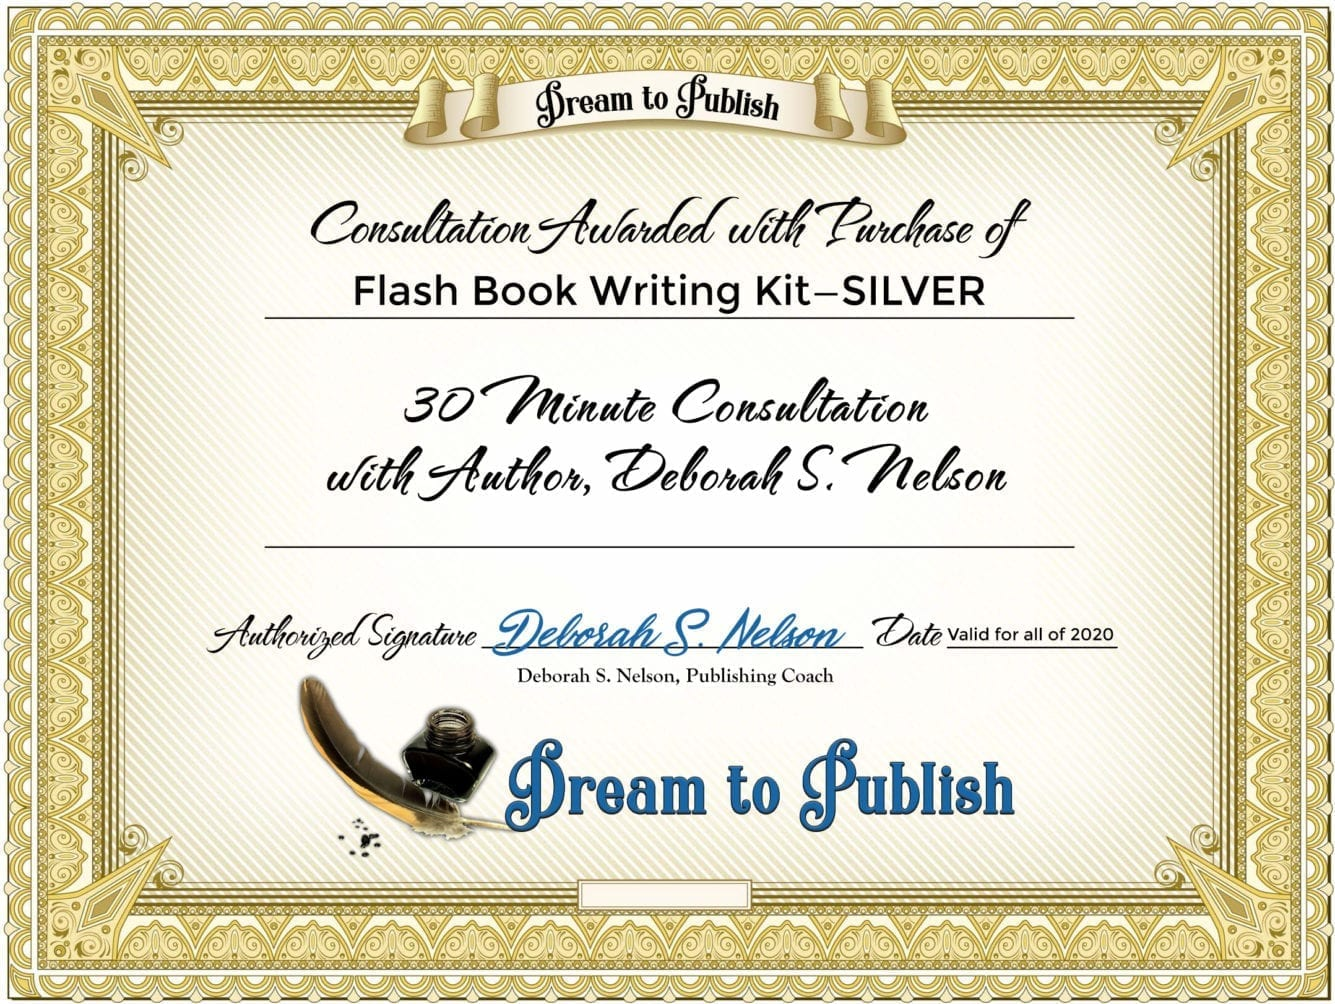 Flash Book Writing Kit—SILVER Certificate